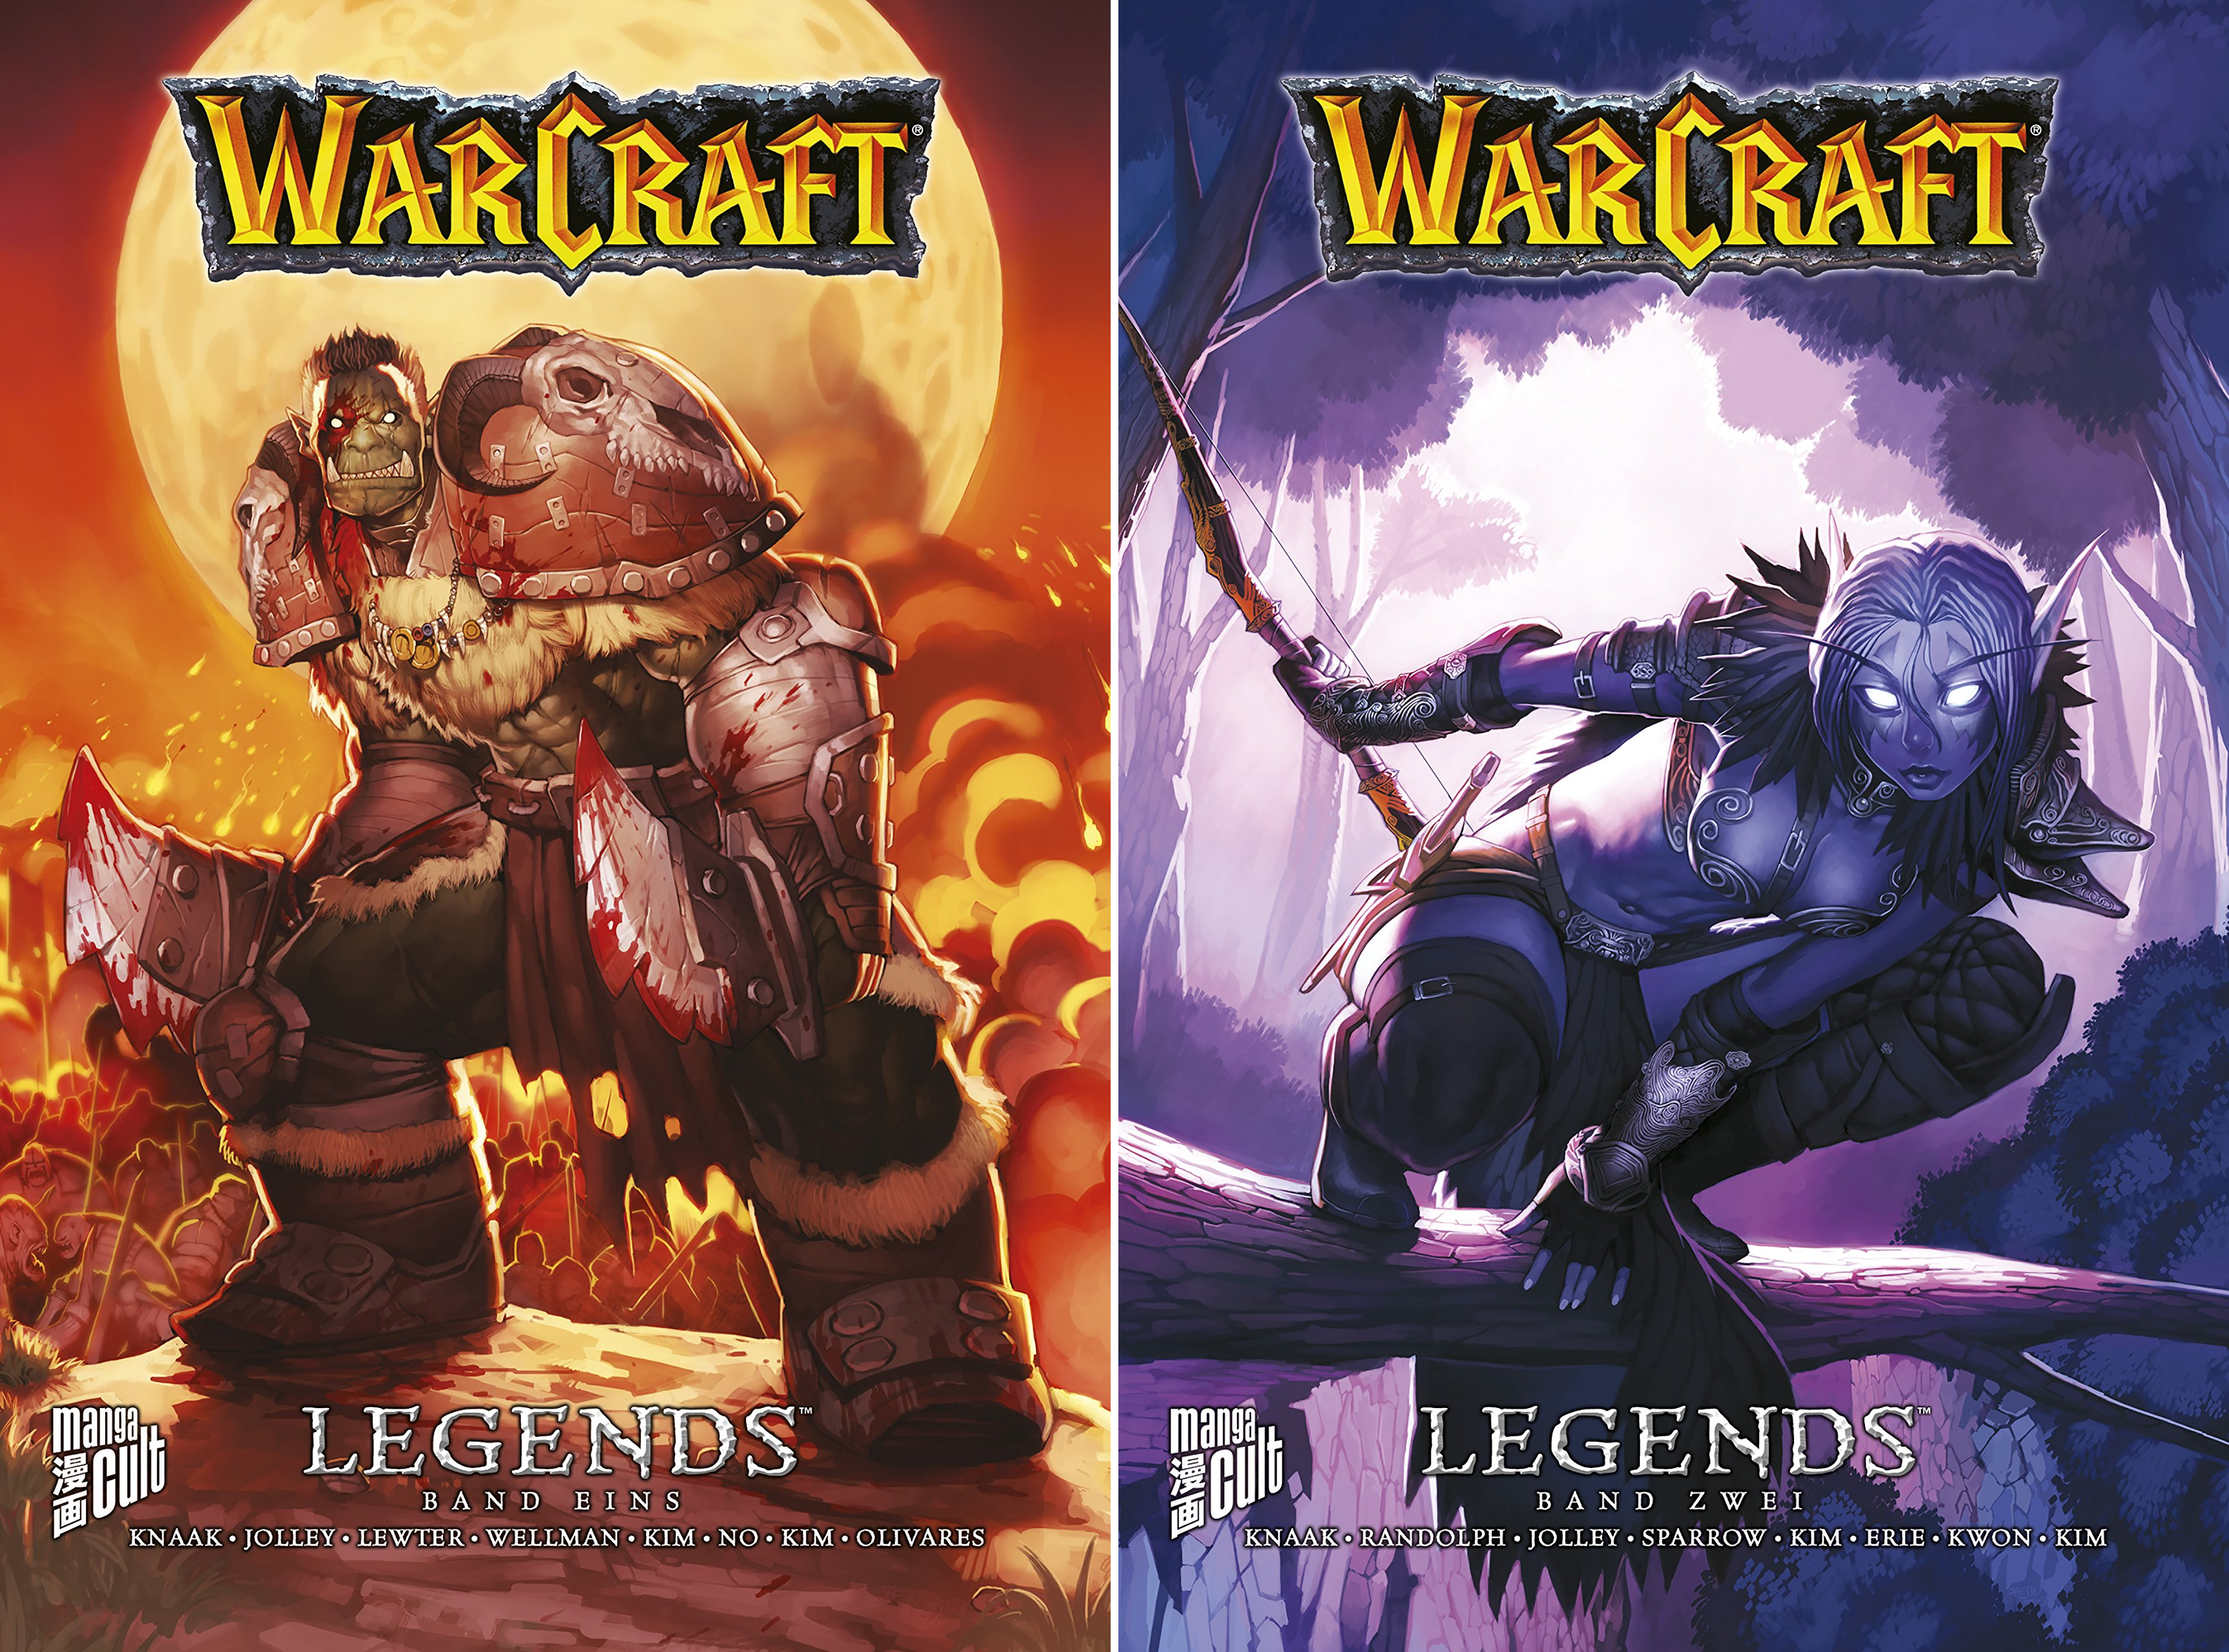 WarCraft: Legends (Reihe in 2 Bänden)